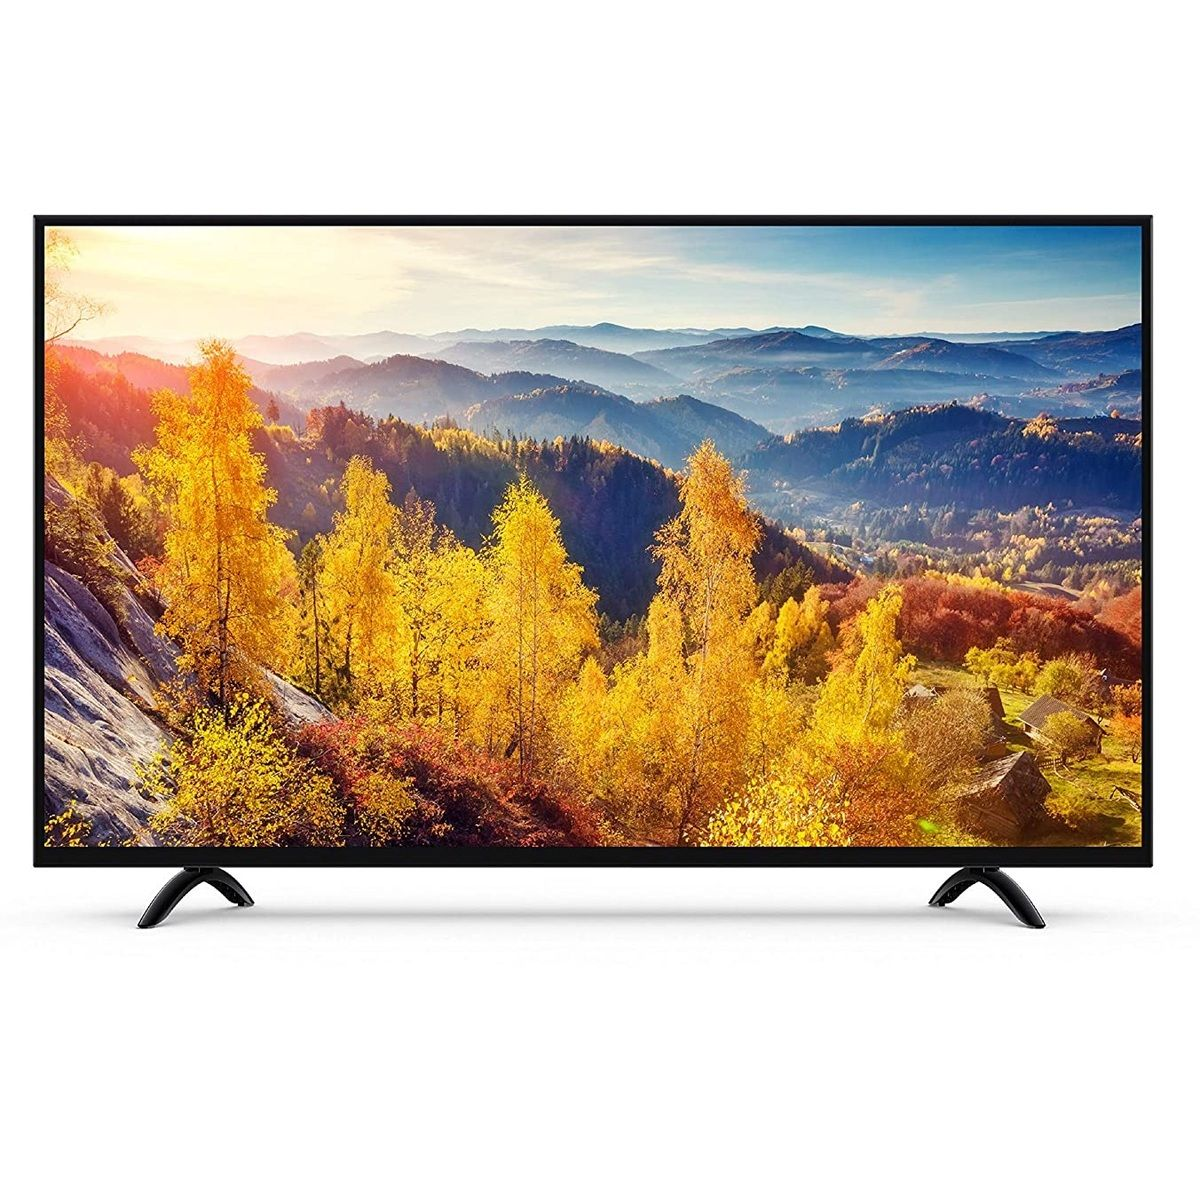 Led Tv Vs Lcd Tv What Is The Difference Led Tv Lcd Tv Lcd